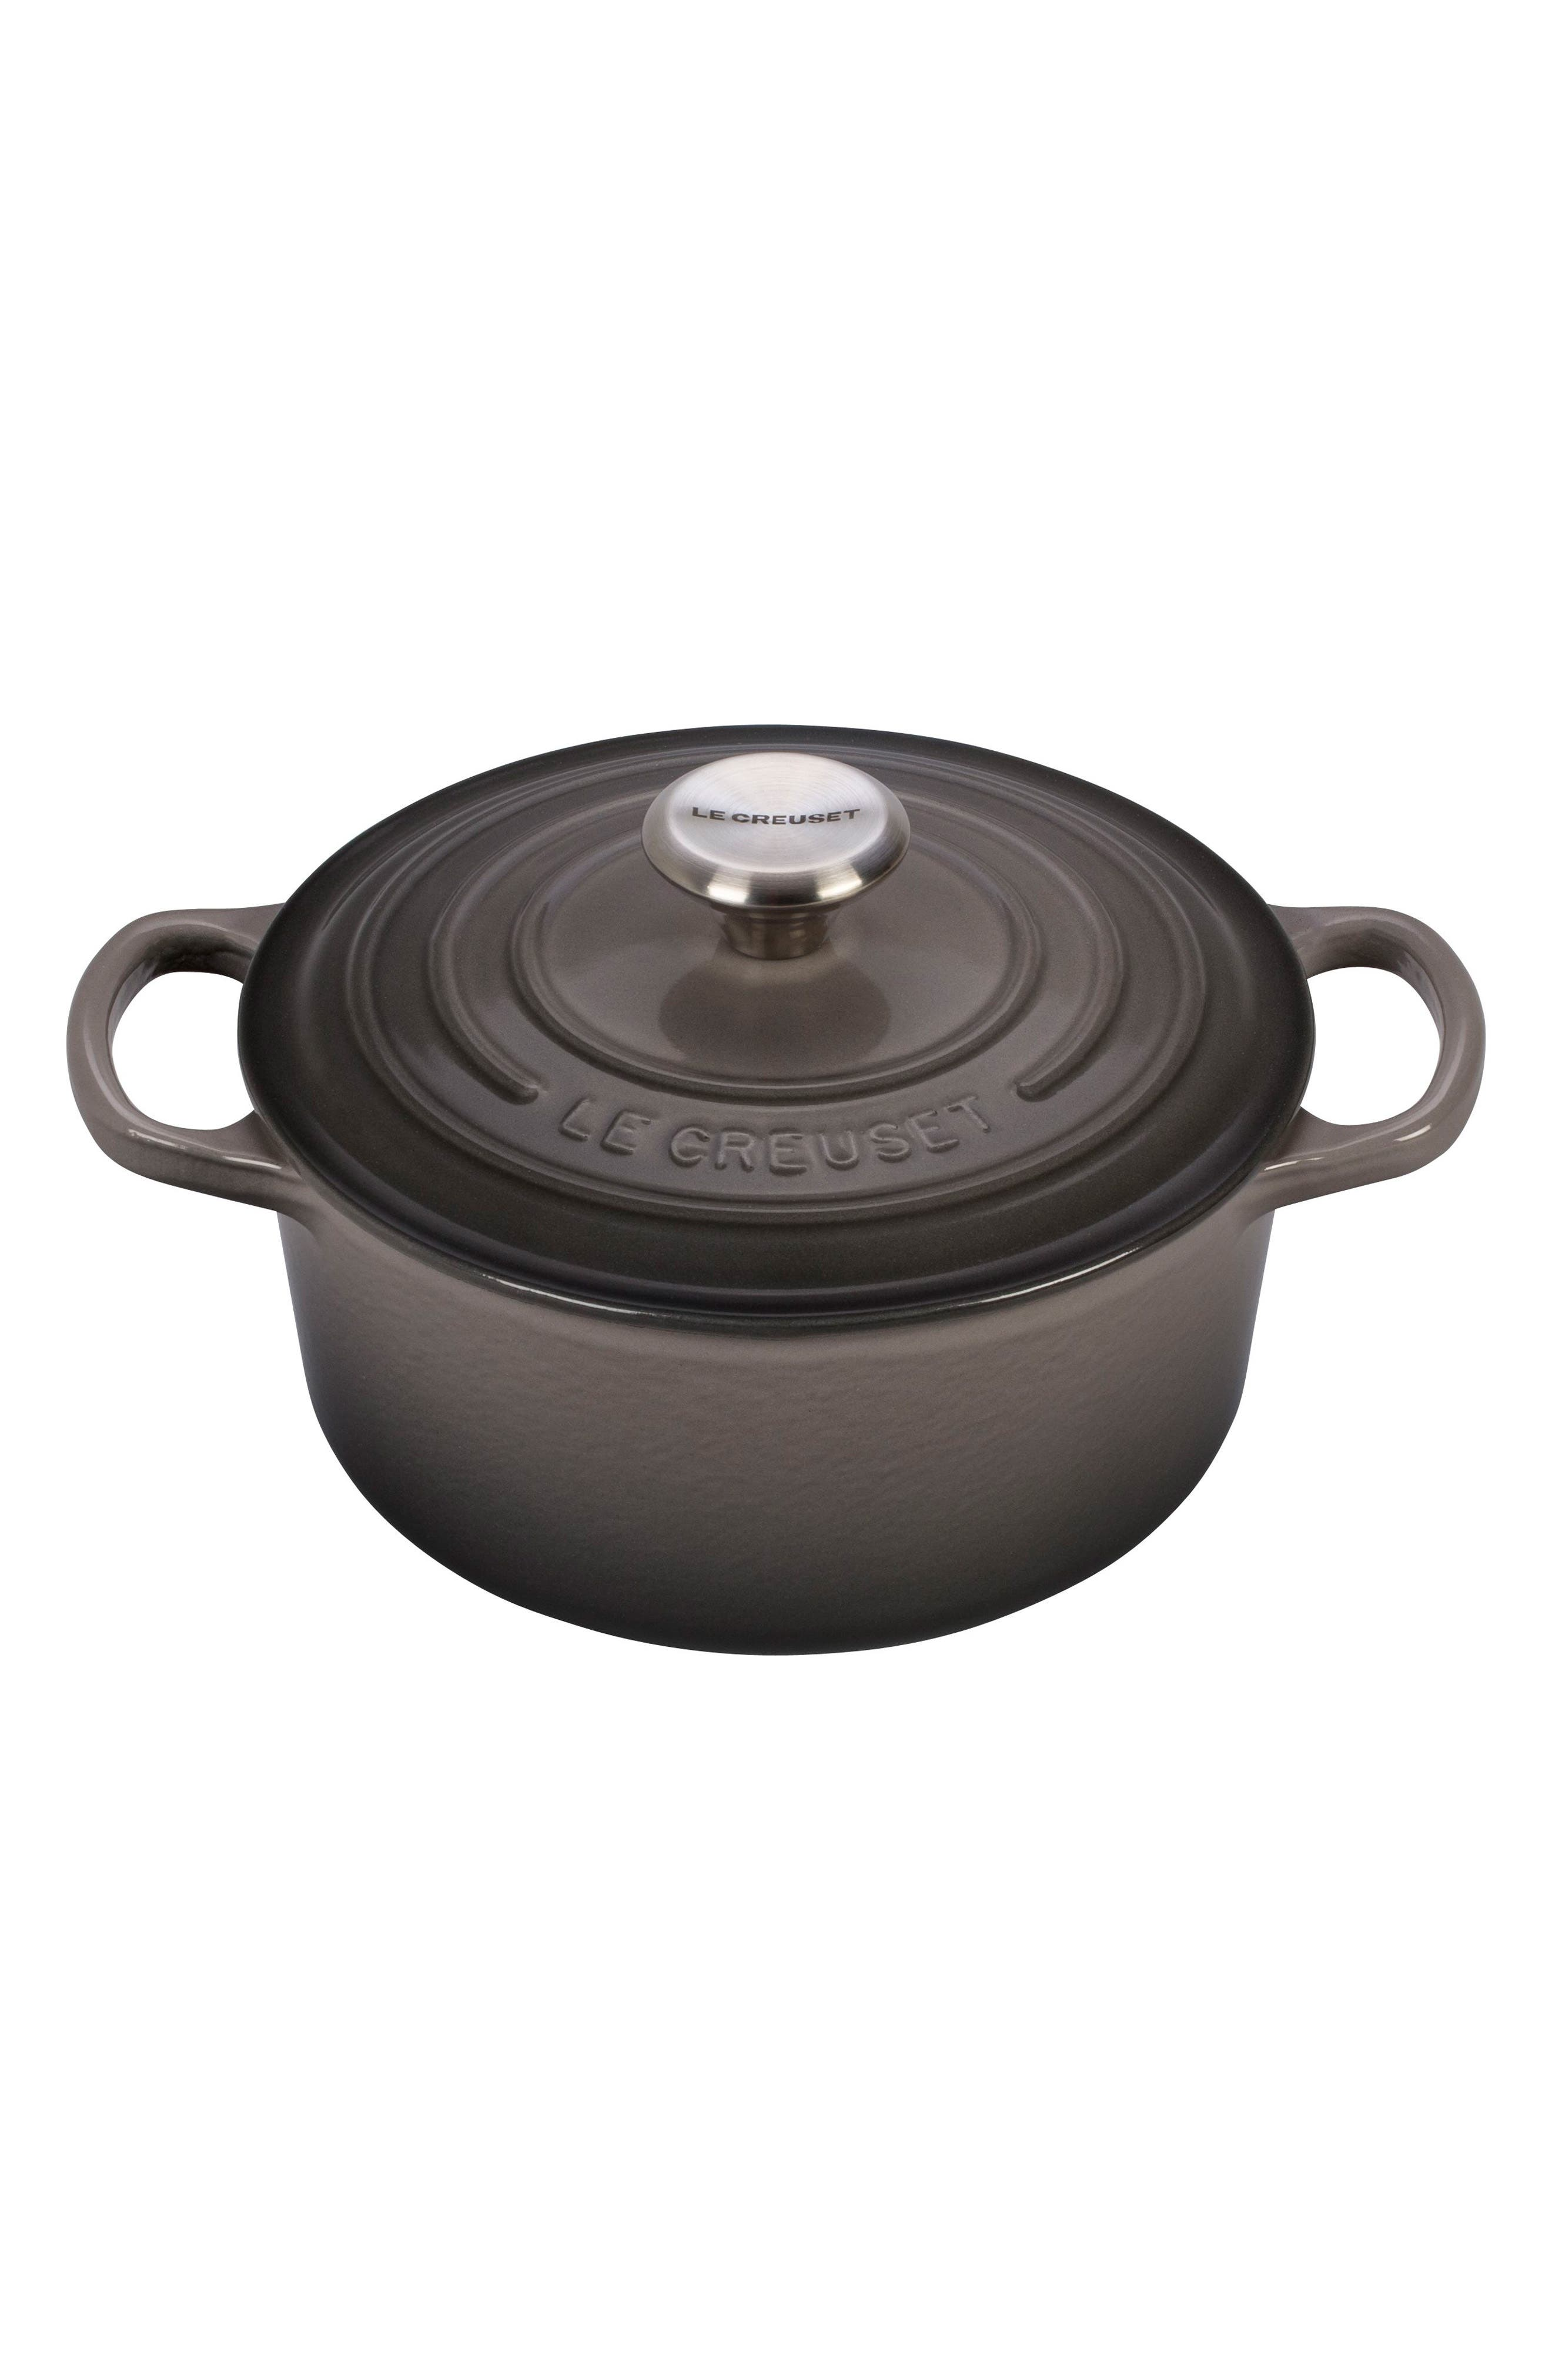 Signature 2-Quart Oval Enamel Cast Iron French/Dutch Oven,                         Main,                         color, Oyster